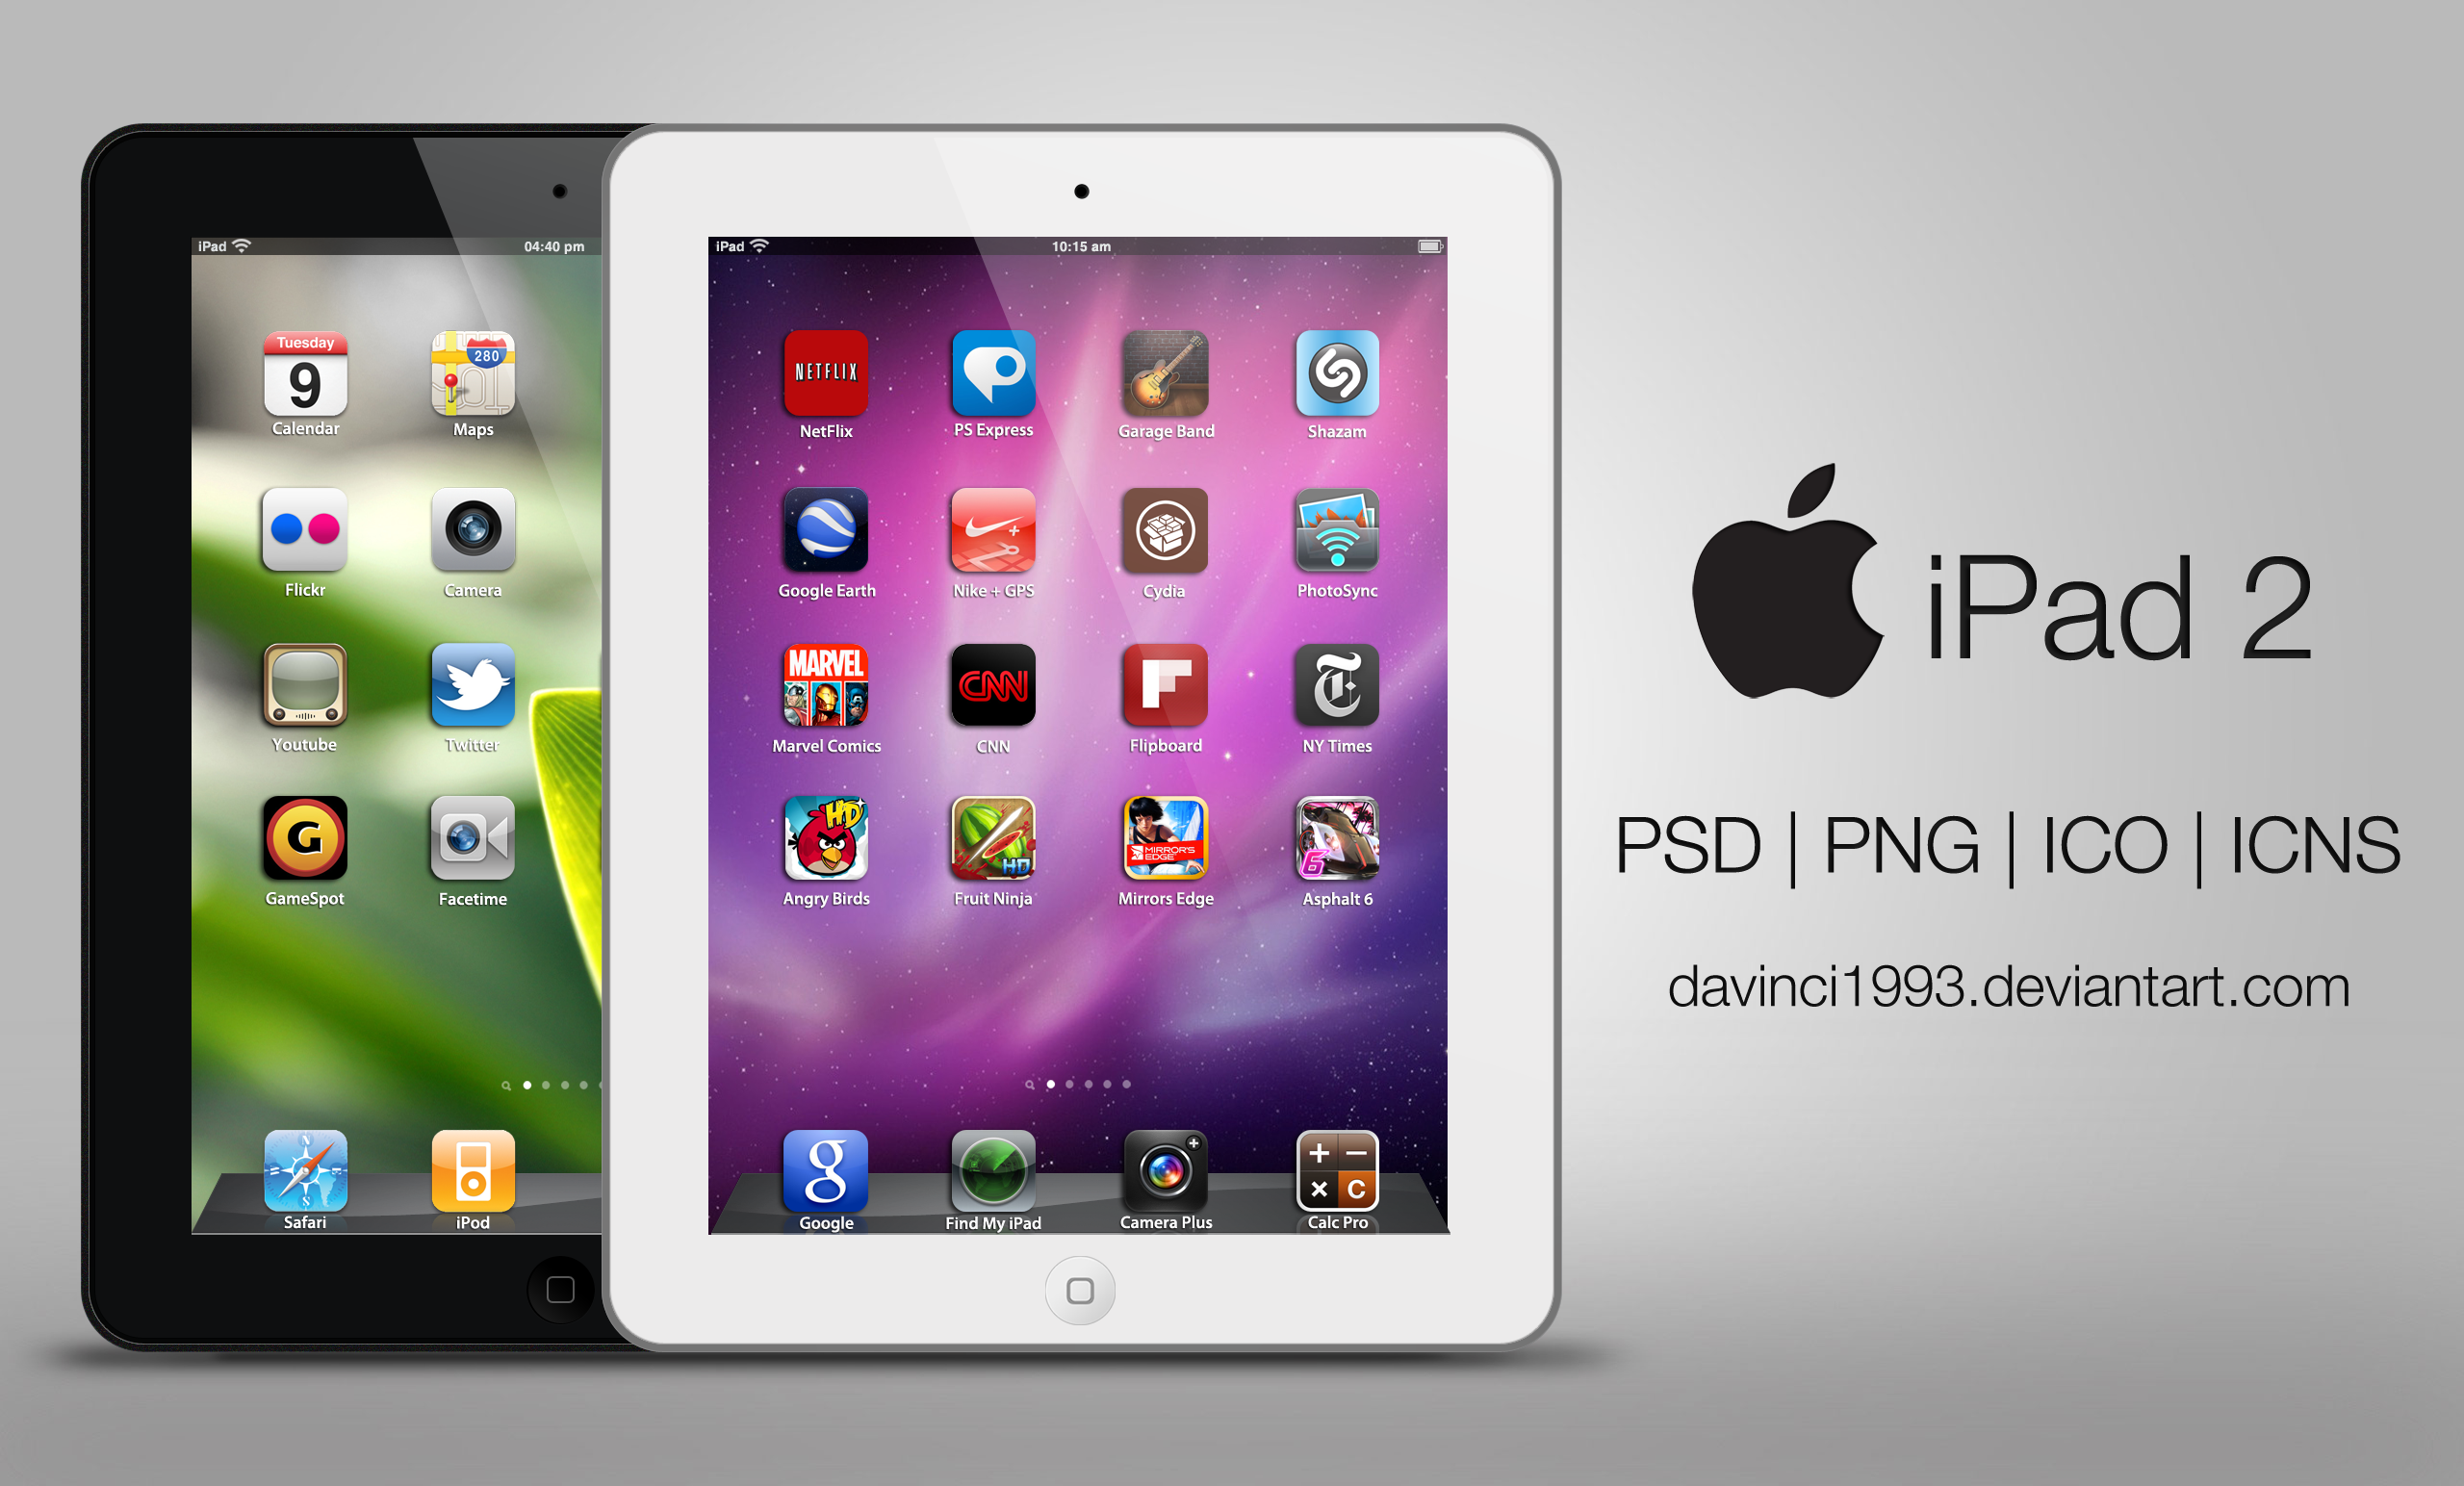 Apple iPad 2: PSD | PNG | ICO | ICNS by davinci1993